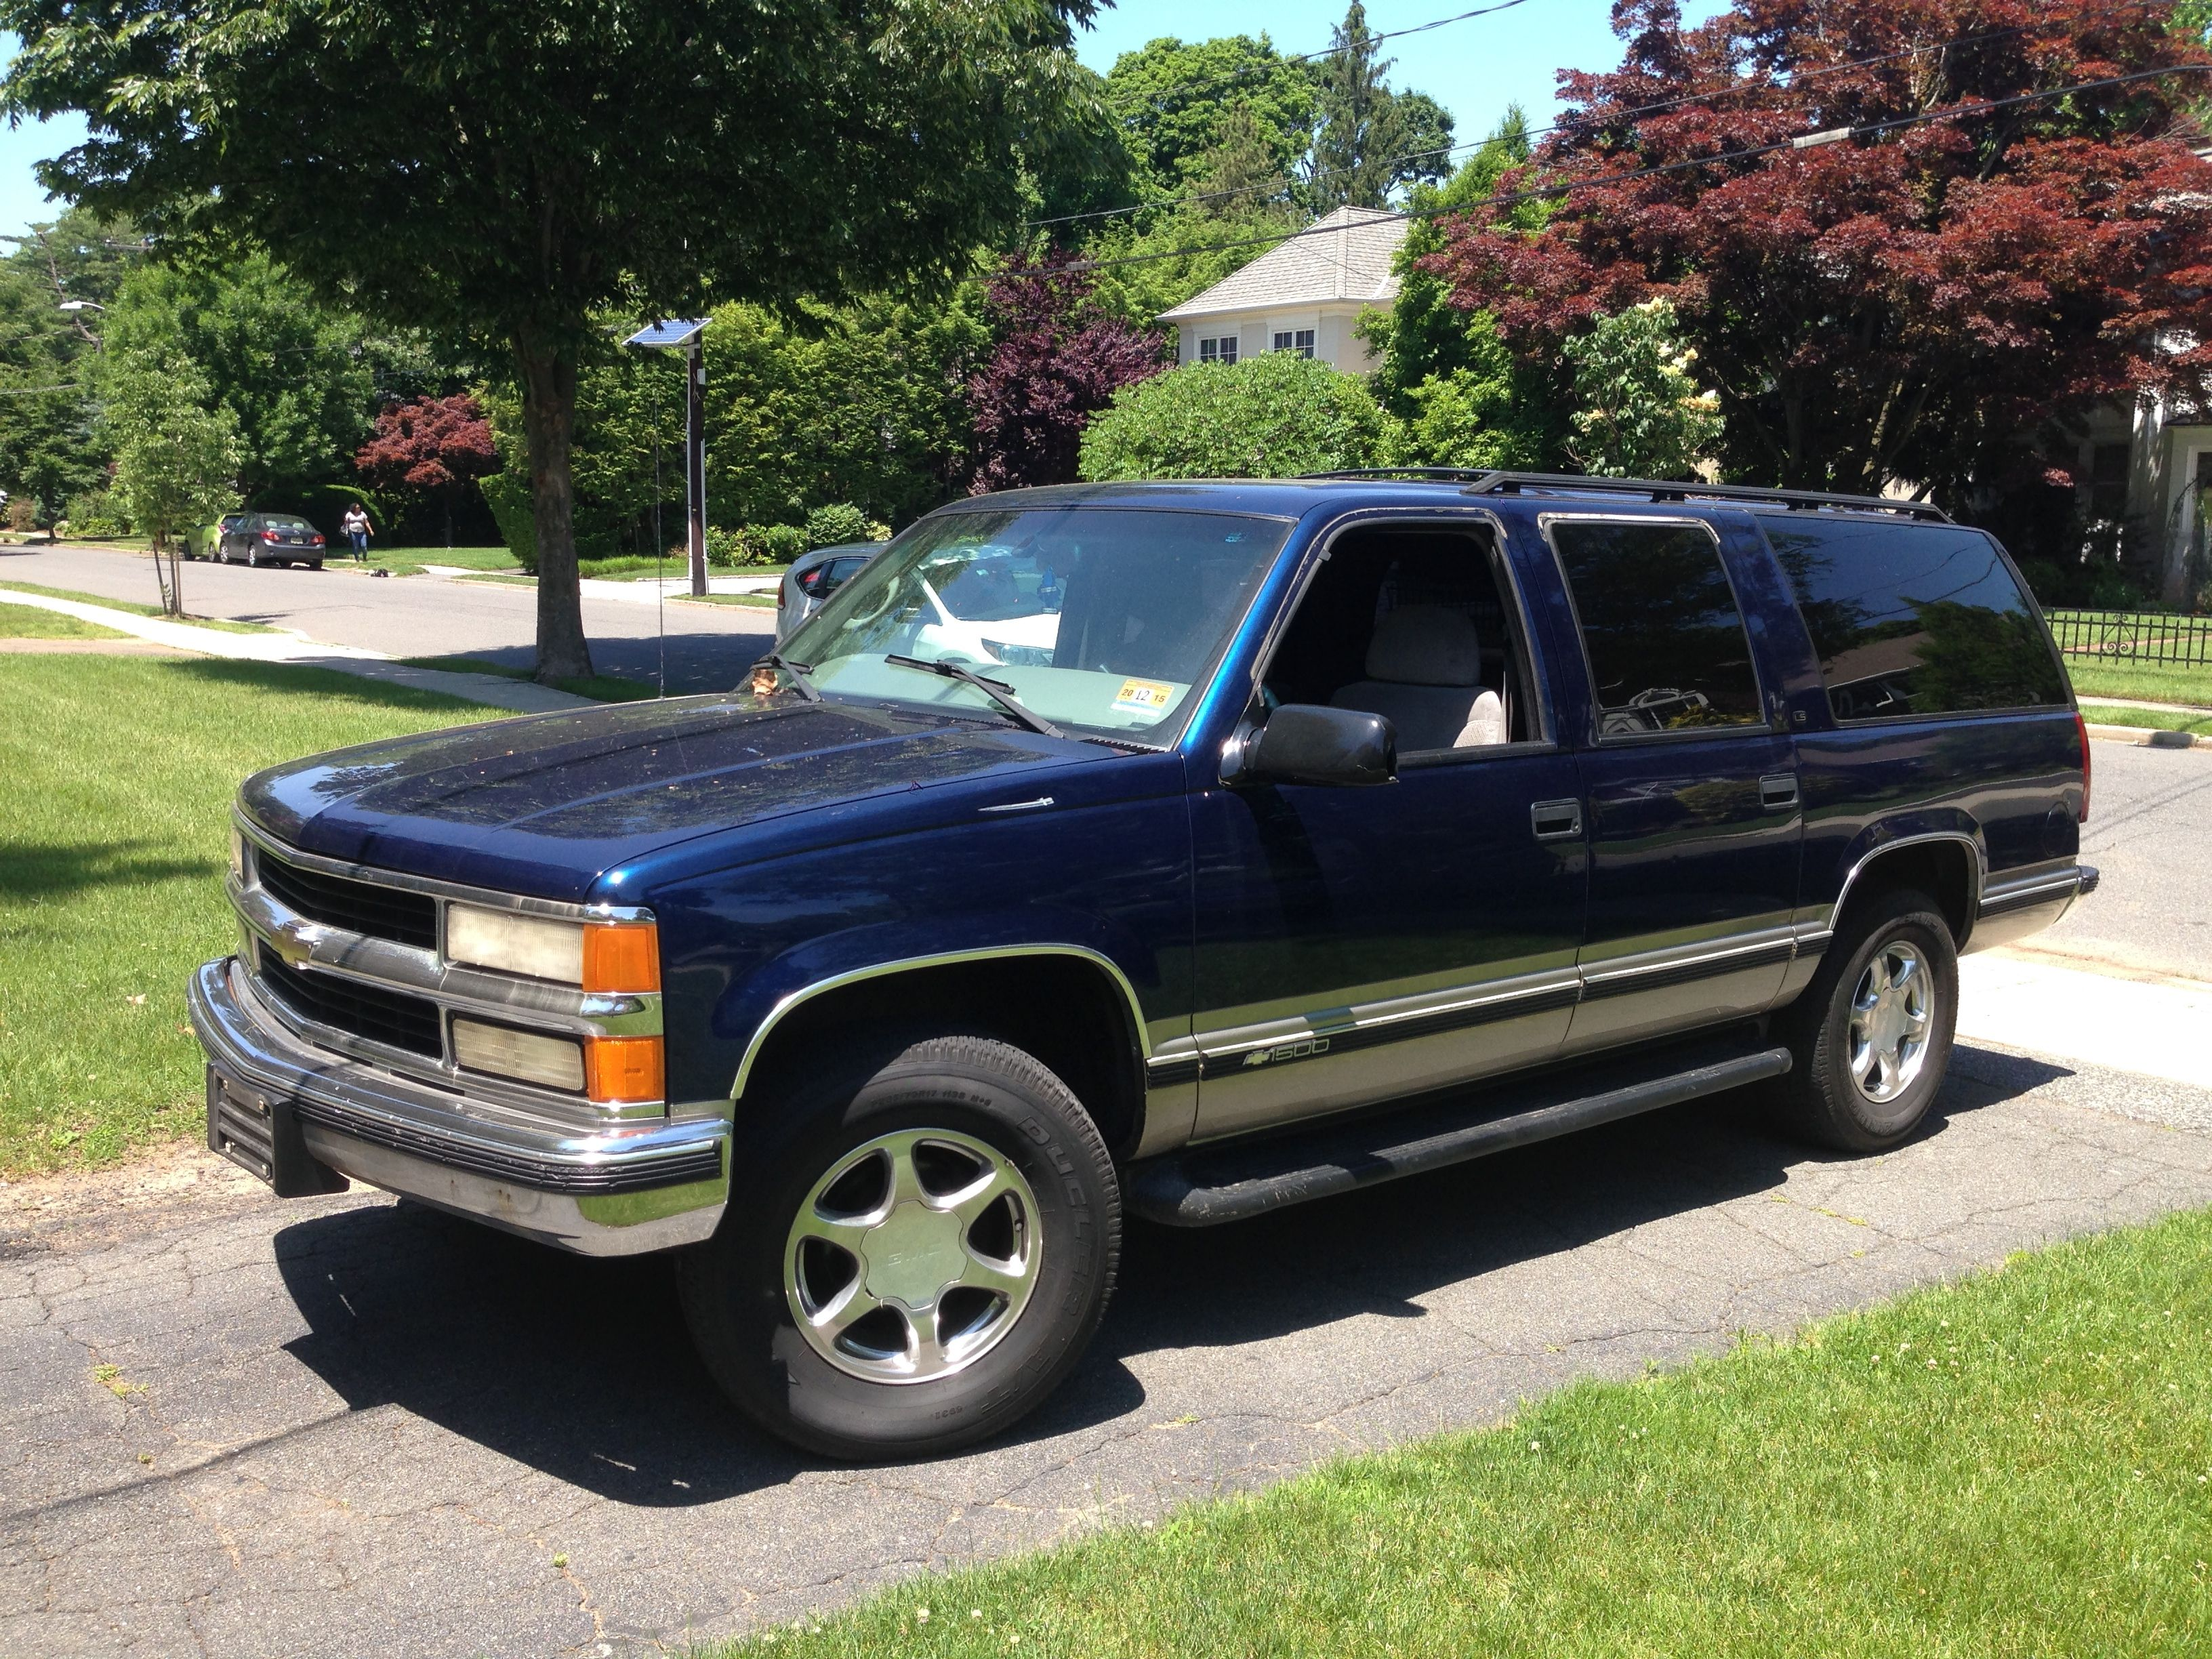 small resolution of 99 suburban 5 7l vortec v8 no rust clean interior only 115k miles still for sale